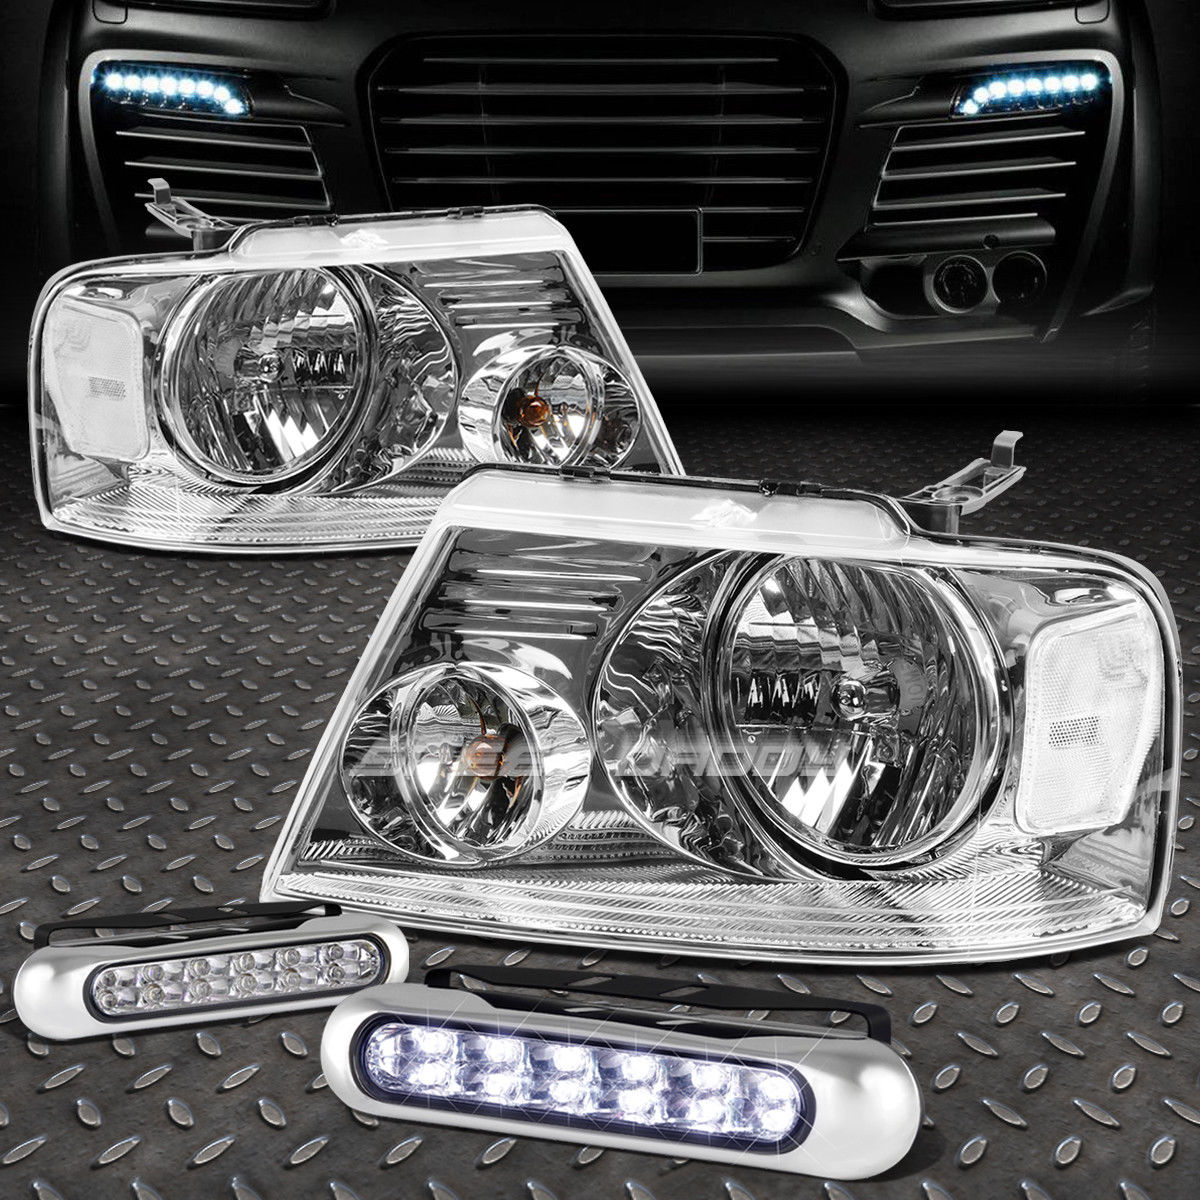 フォグライト CHROME HOUSING HEADLIGHT CLEAR CORNER+12 LED GRILL FOG LIGHT FOR 04-08 F150 CHROME HOUSING HEADLIGHT CLEAR CORNER + 04-08 F150のための12個のLEDグリルフォグライト